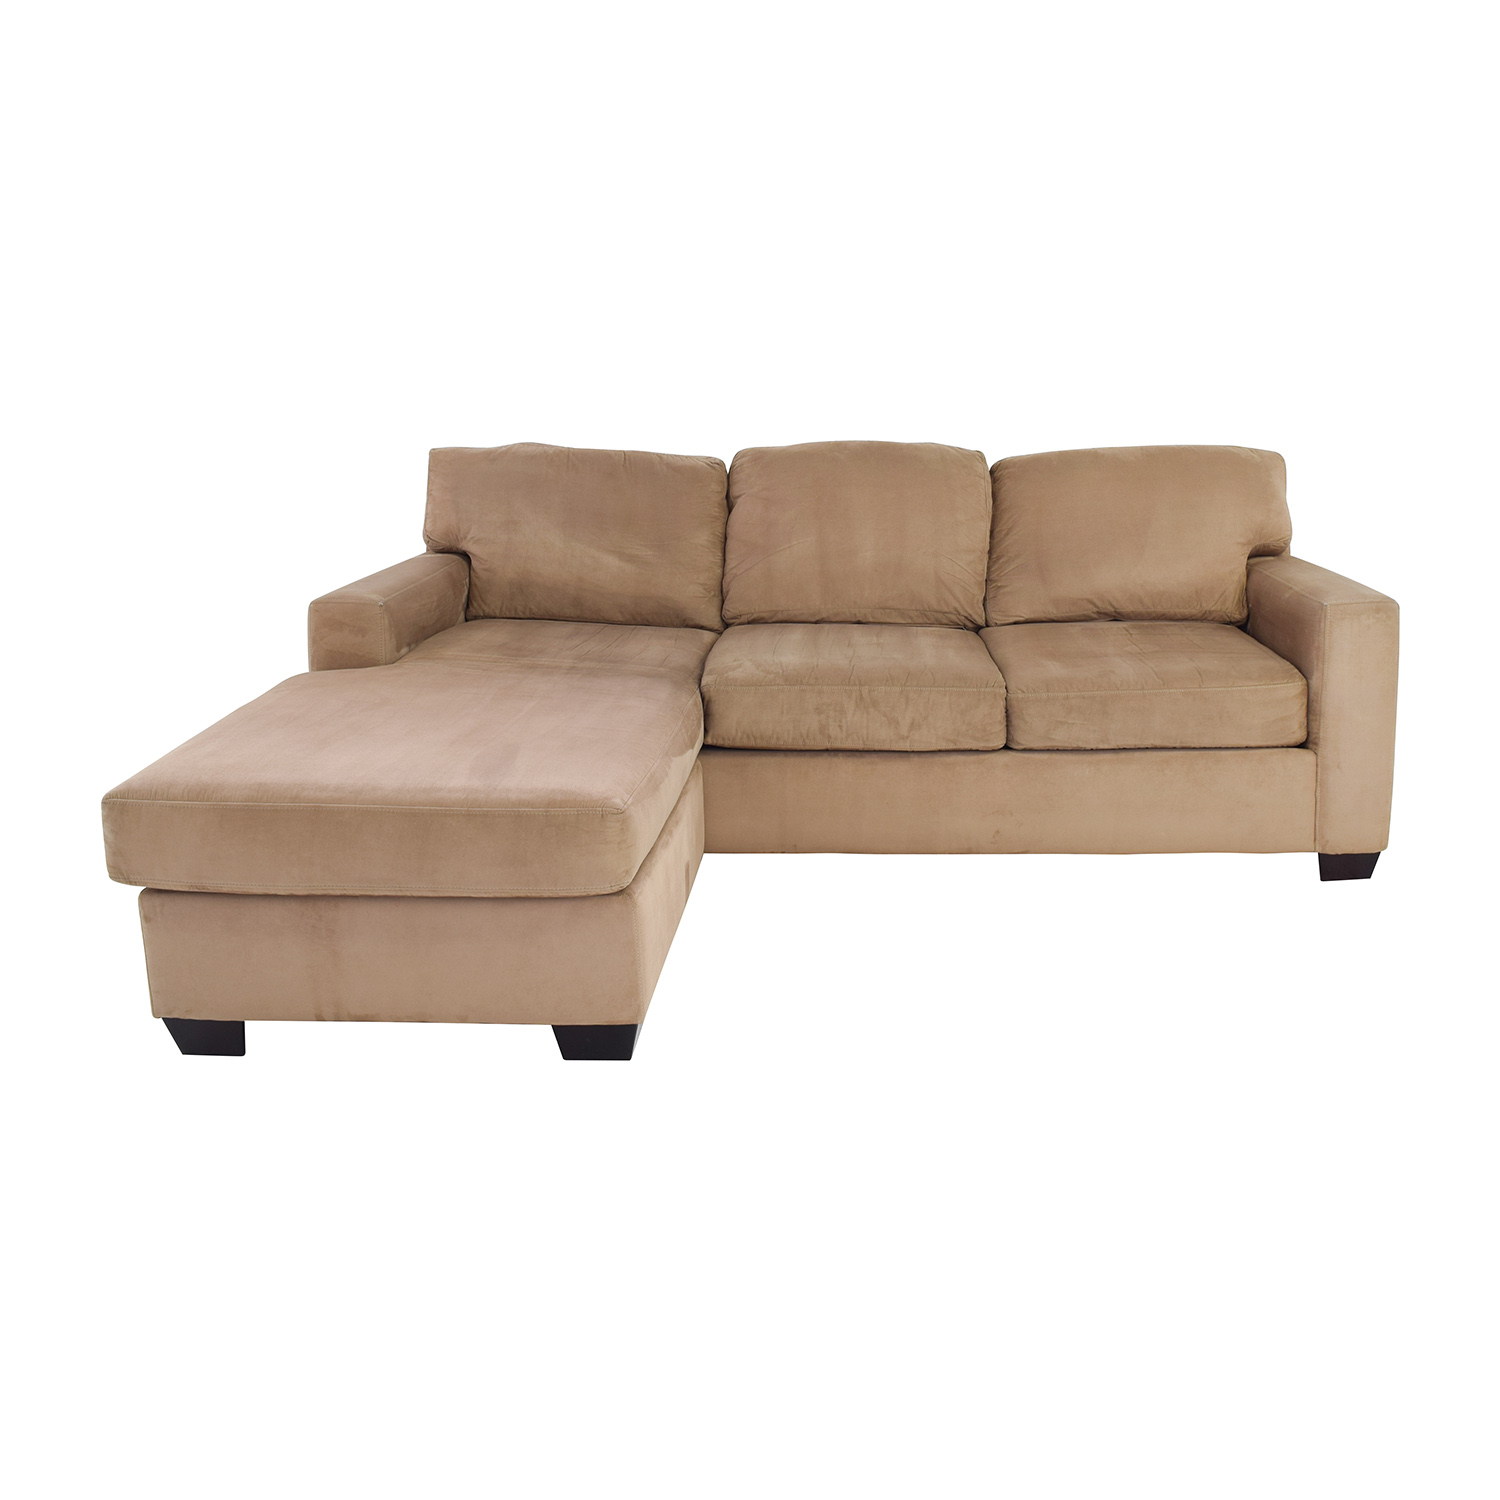 Max Home Tan Sectional Chaise Sofa / Sofas ...